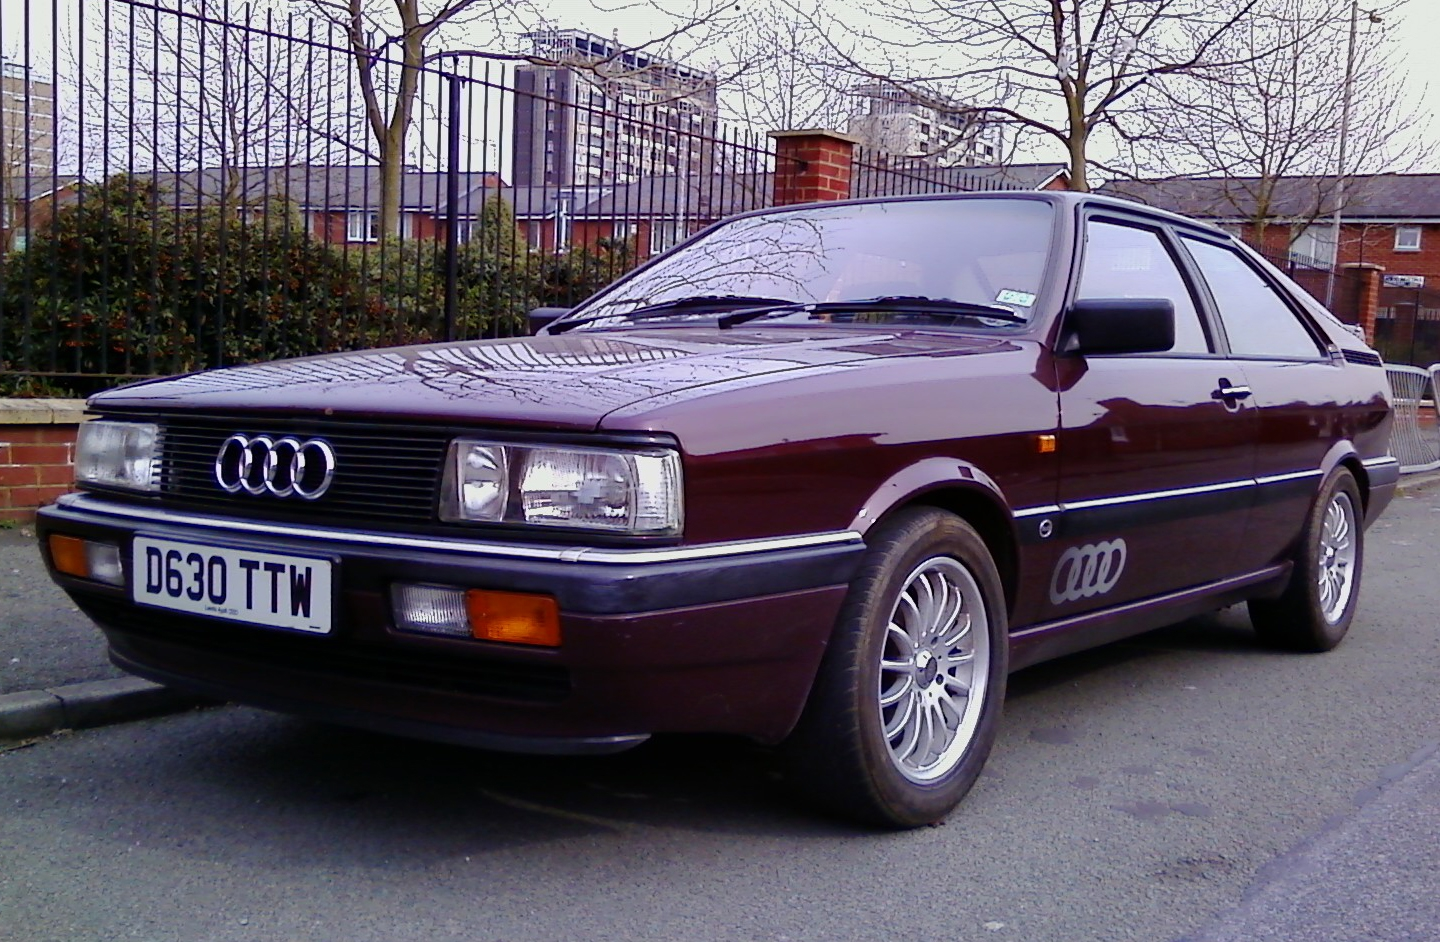 Smiter's 1986 Audi Coupe